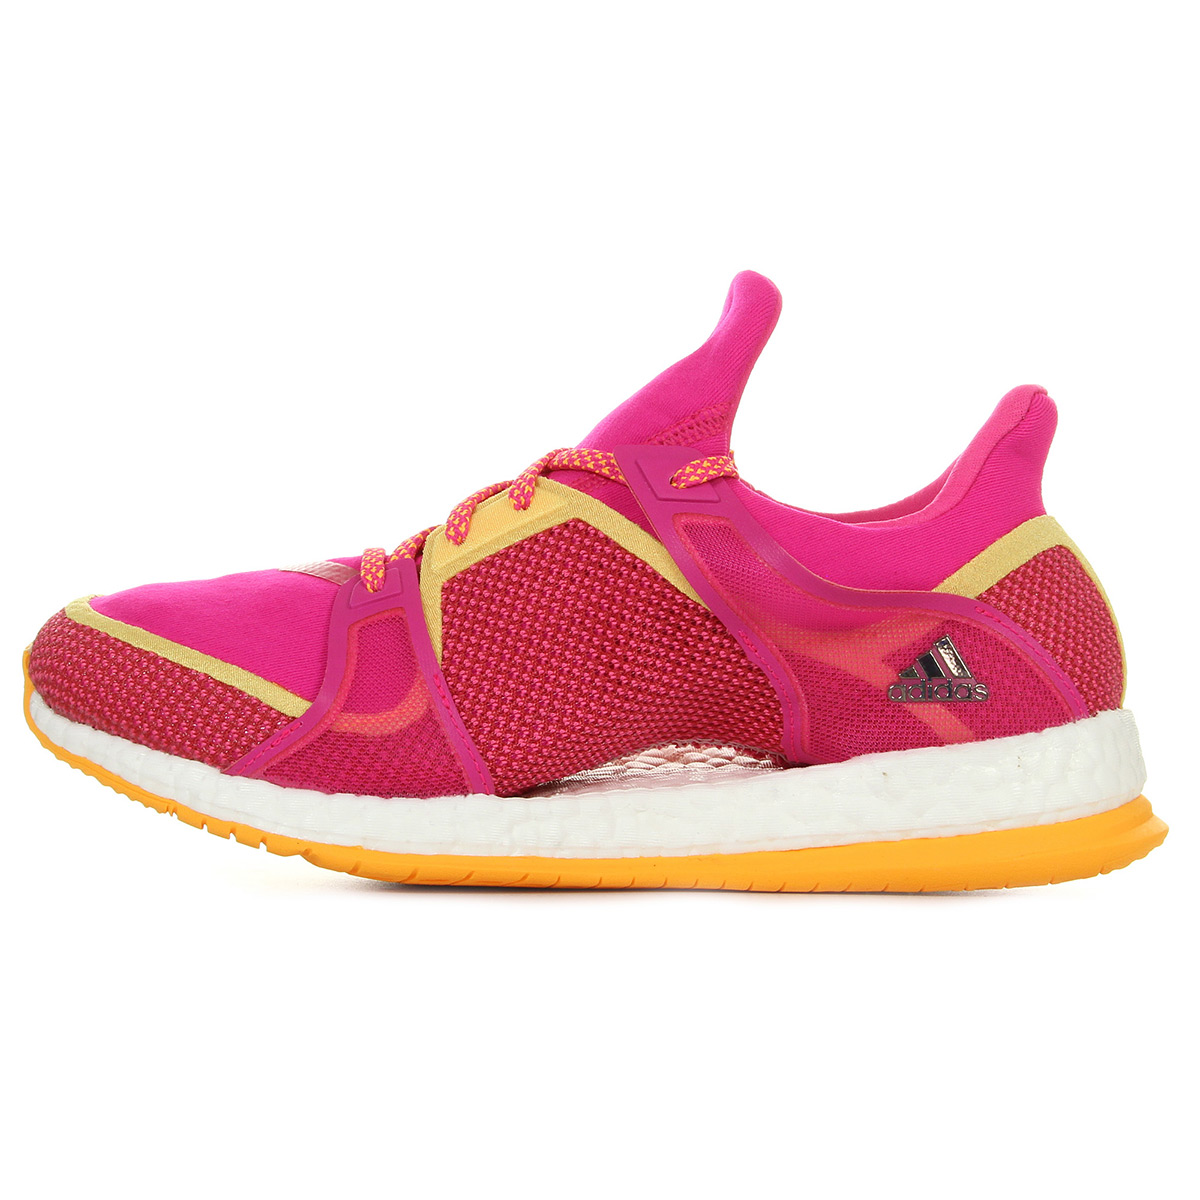 Chaussures Baskets adidas femme Pure Boost X TR taille Rose Synthétique Lacets YPHY8